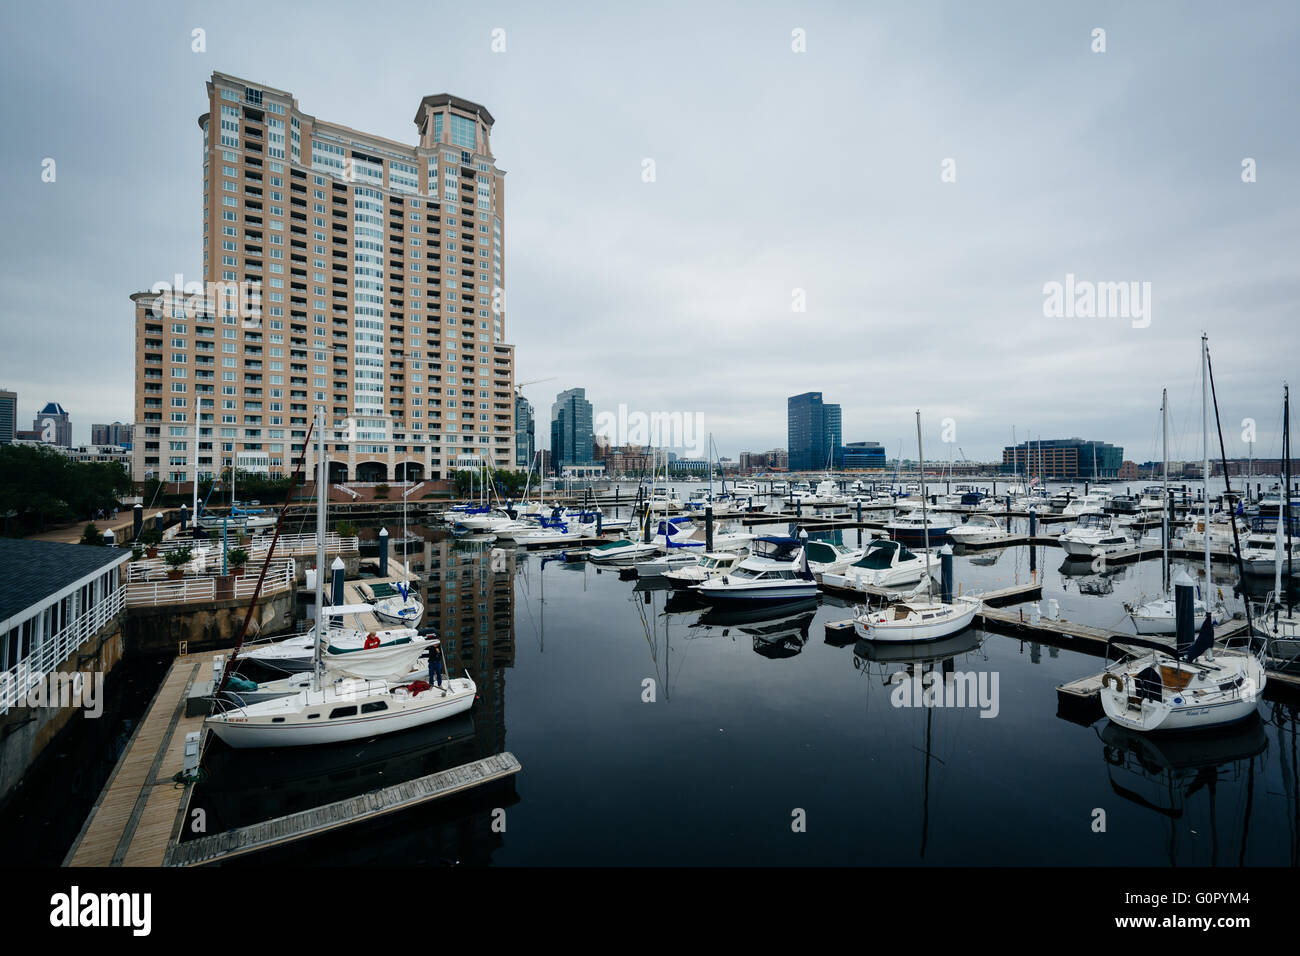 Highrise Apartment Building And Marina At The Inner Harbor, In Baltimore,  Maryland